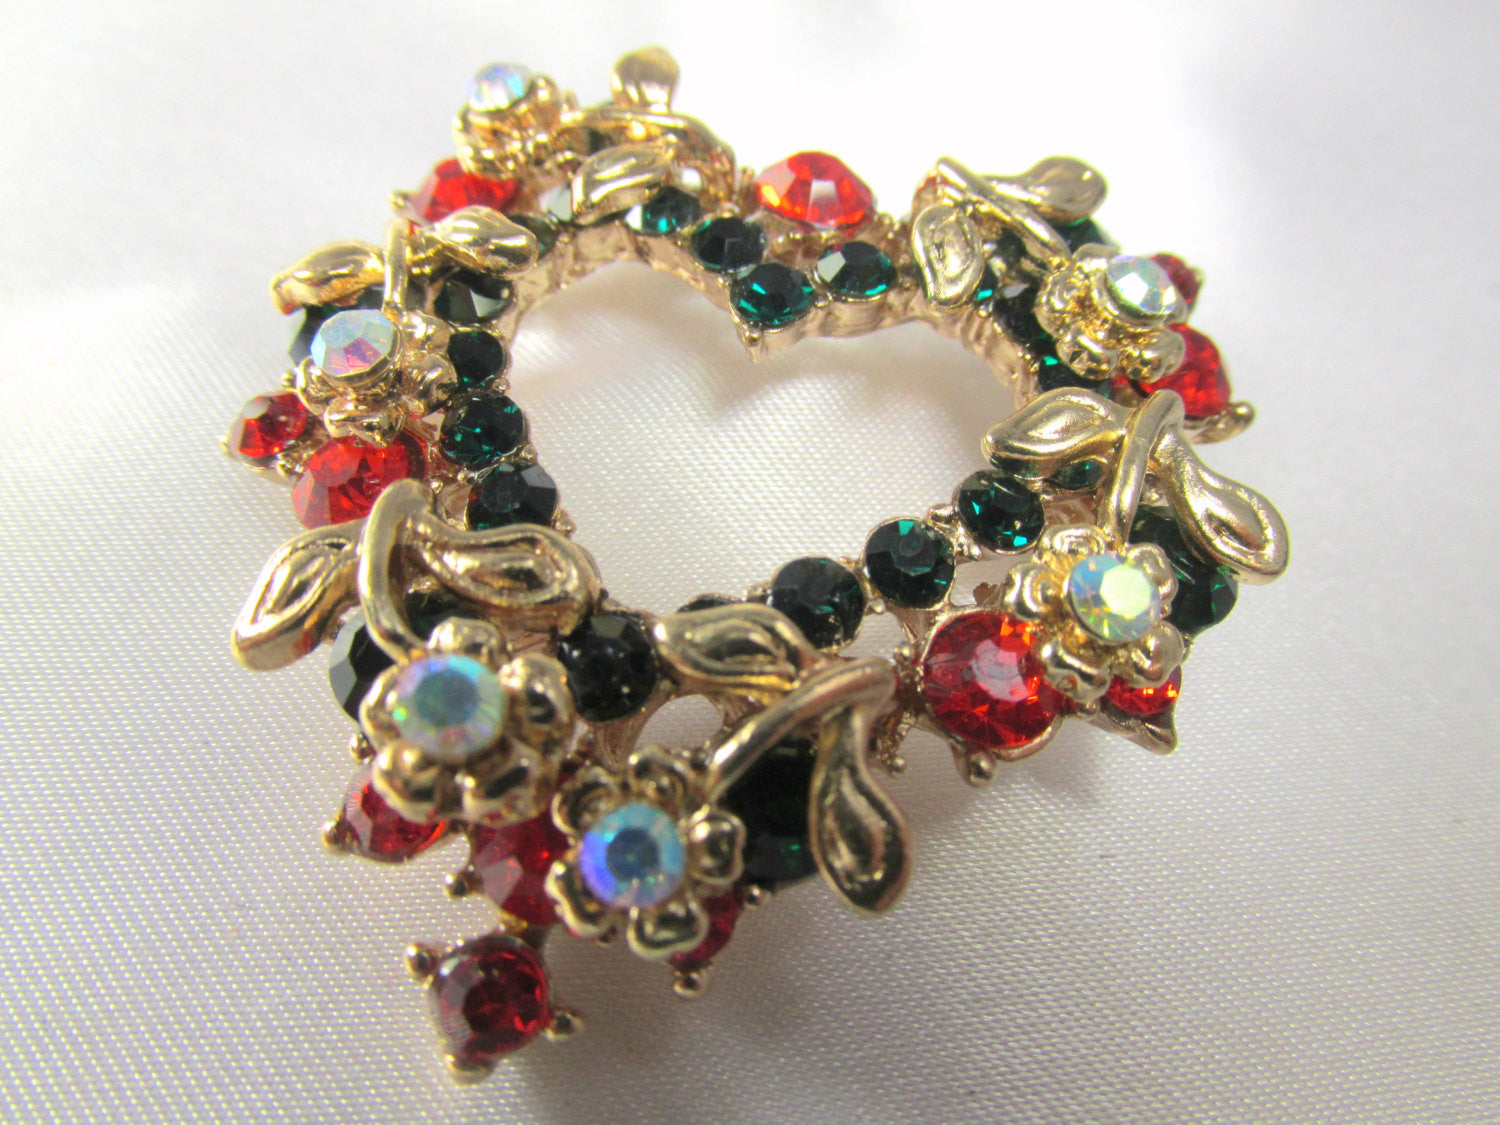 Christmas Heart Wreath Brooch in Green, Red, Crystal AB and Gold - Odyssey Cache - 5